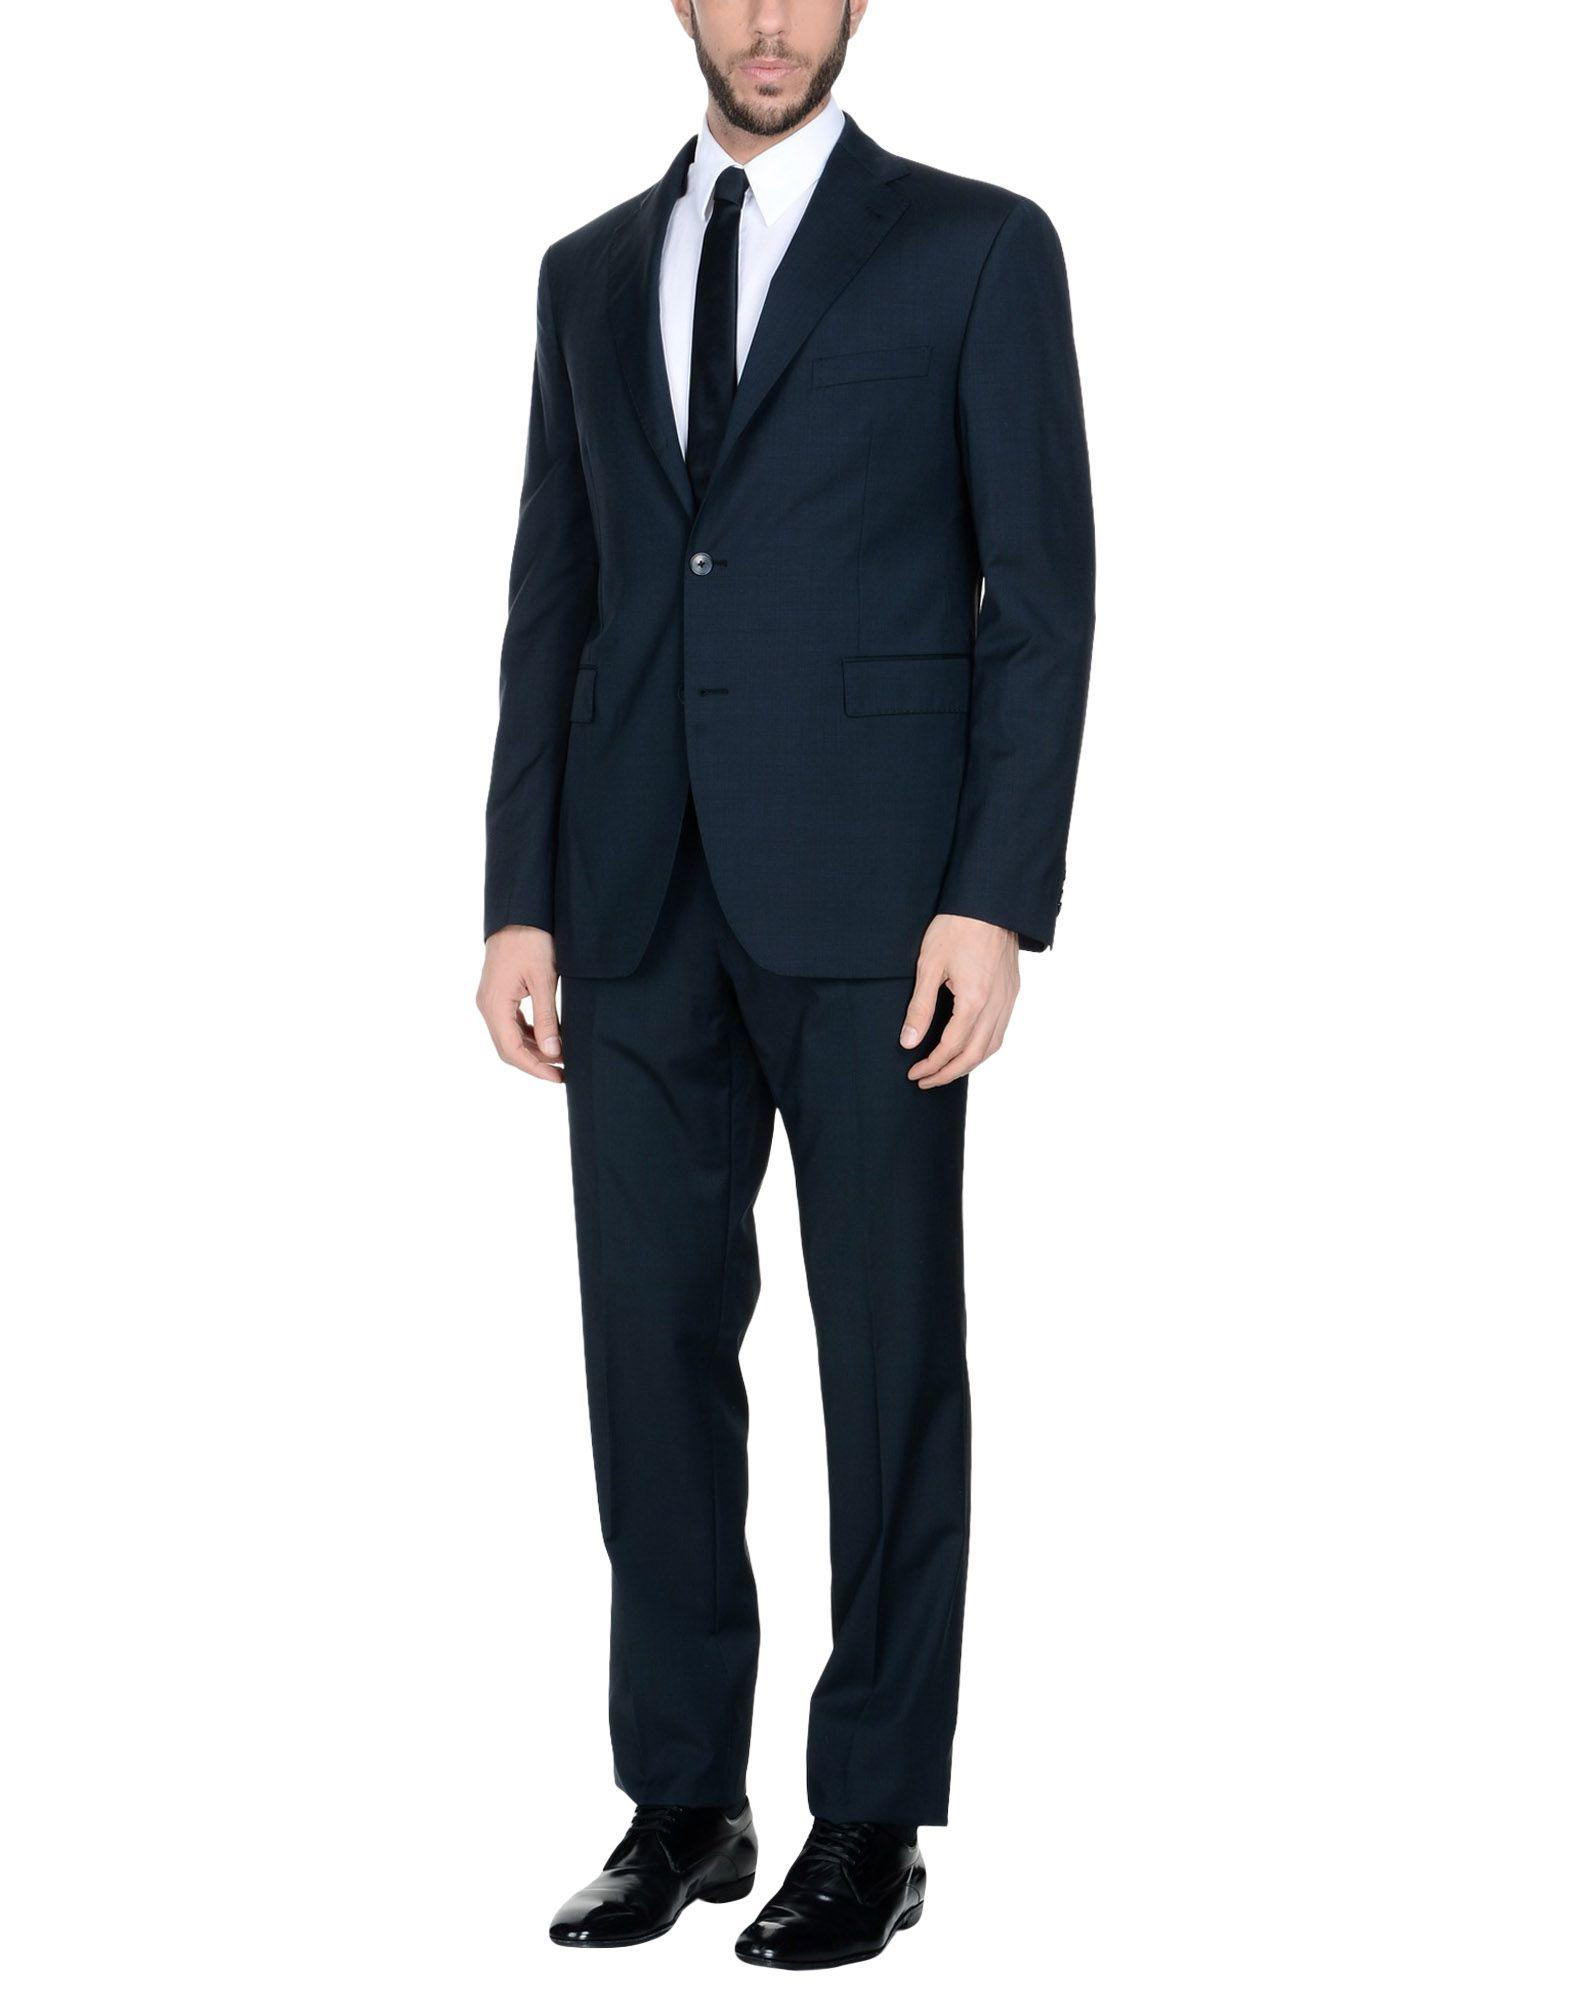 Tagliatore Suits In Dark Blue